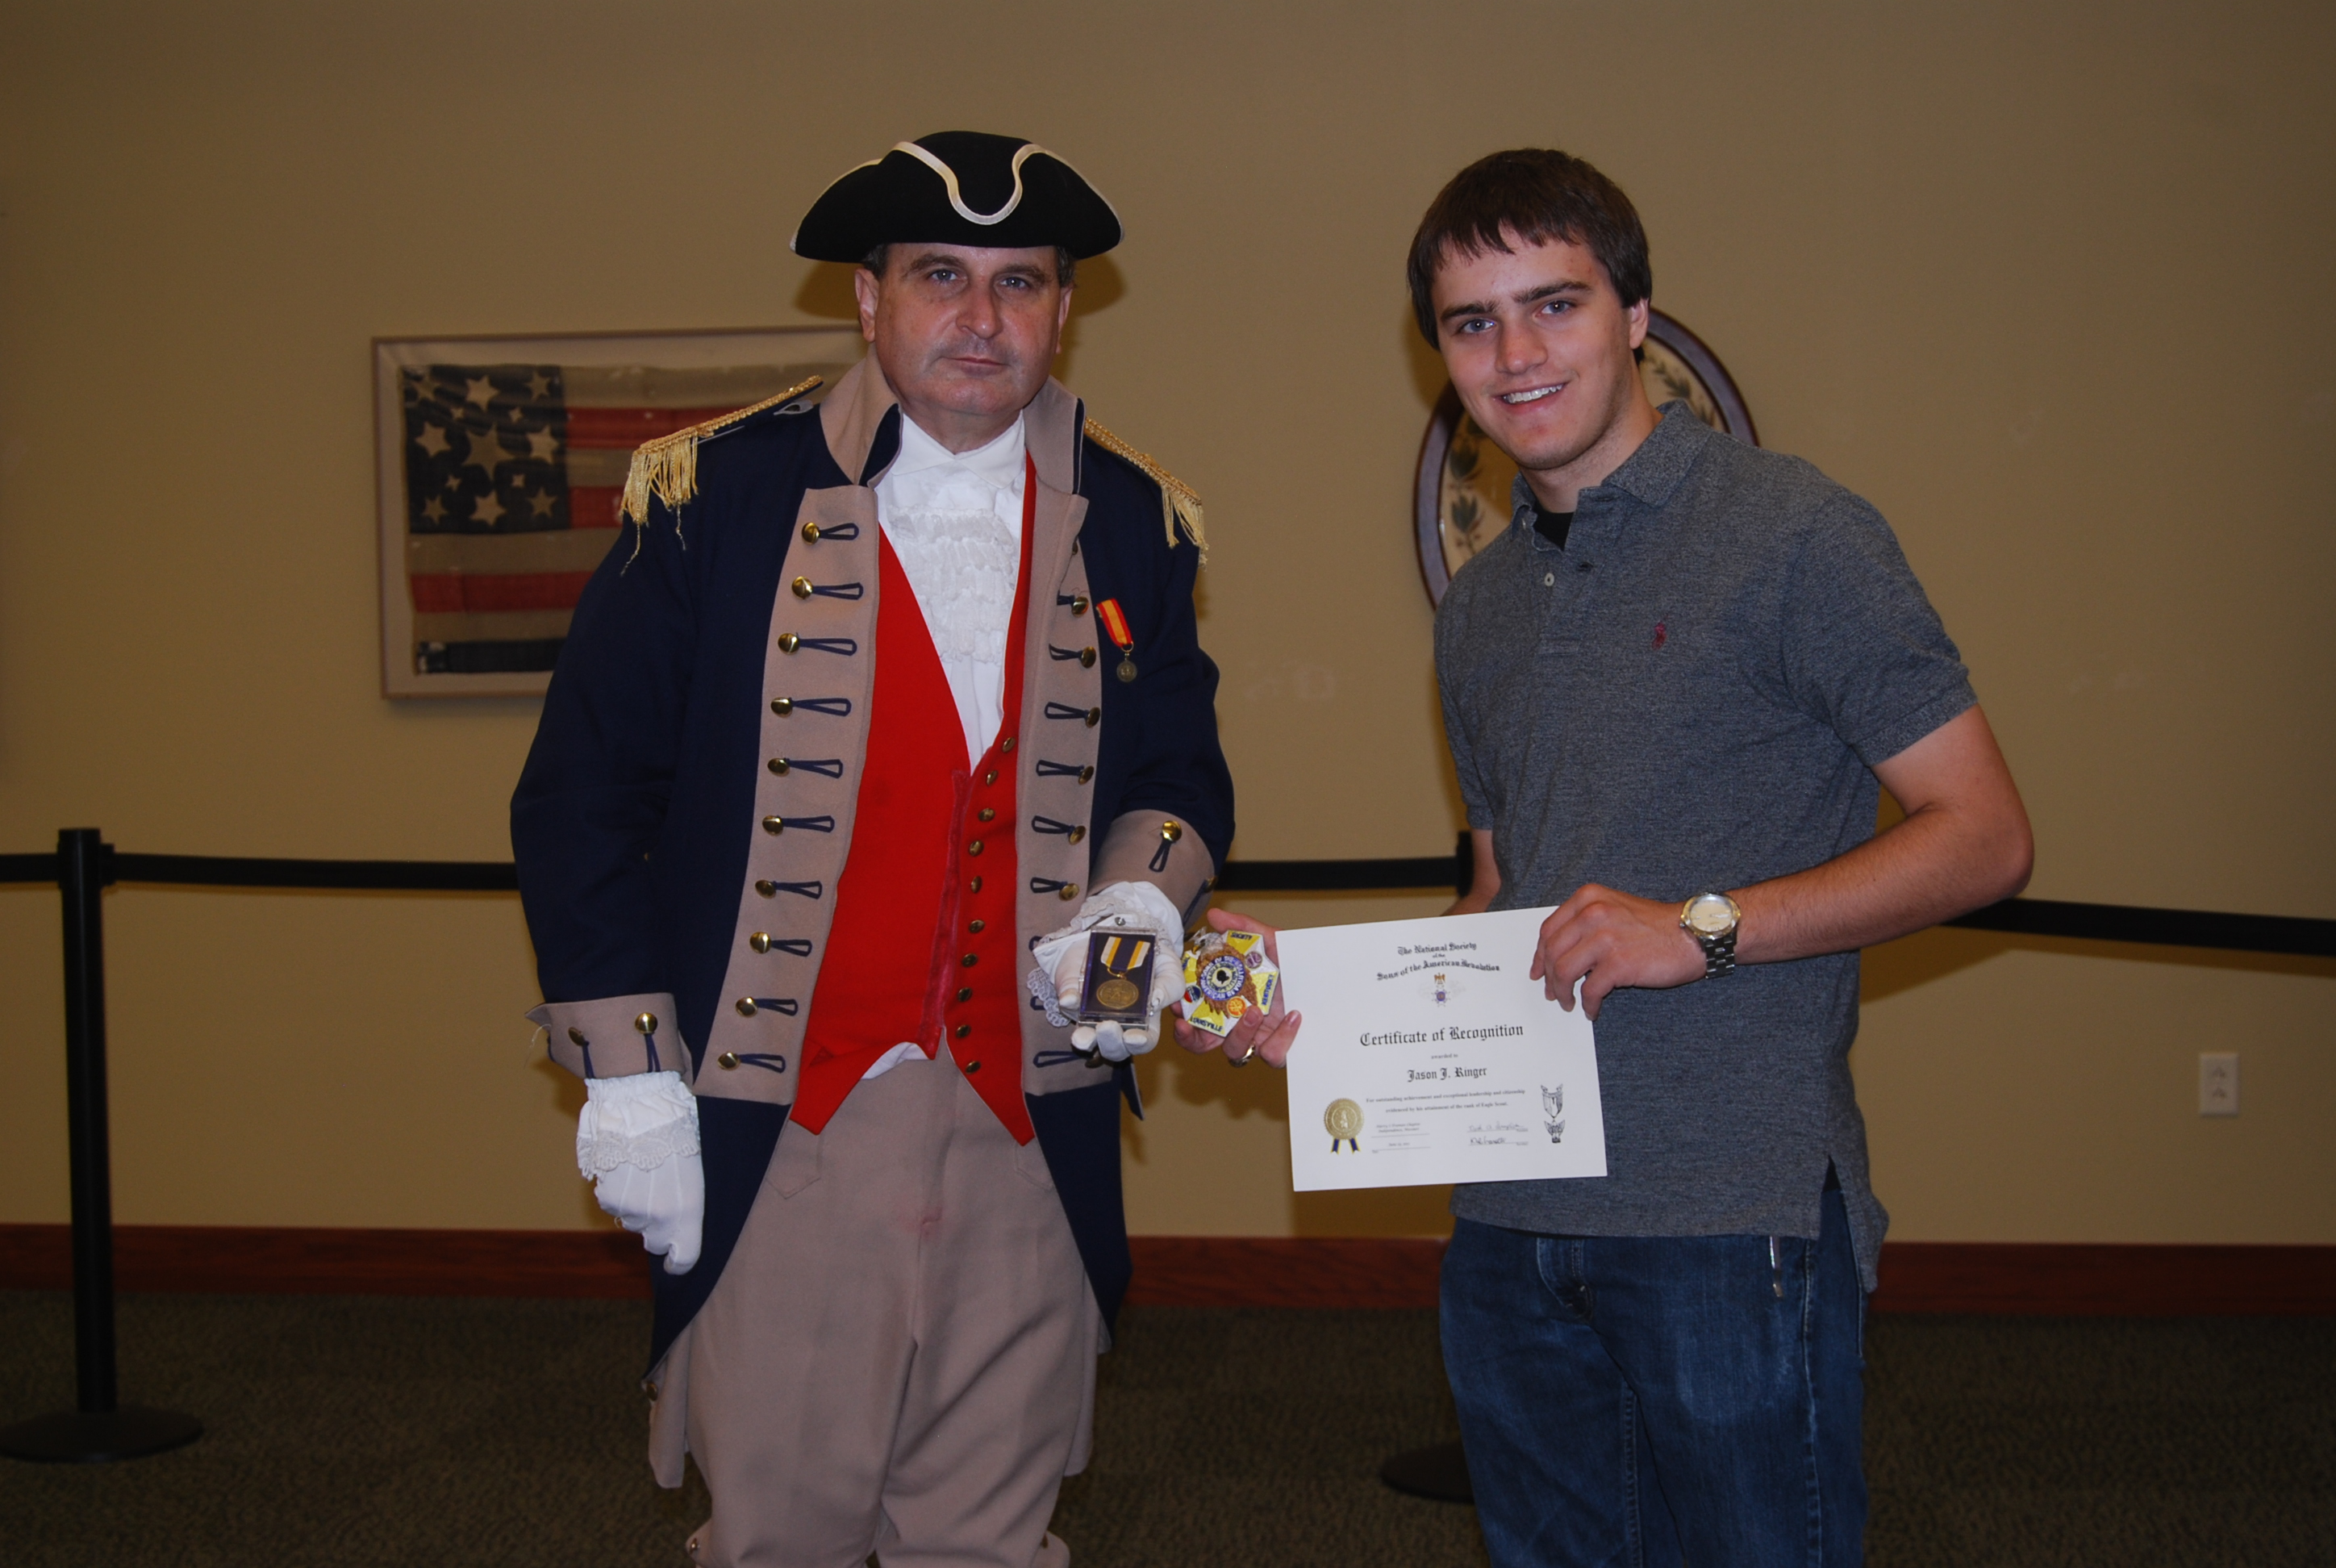 Pictured here are Eagle Scout Jason Ringer and President Dirk Stapleton of the Harry S. Truman Chapter. Eagle Scout Ringer was presented with his NSSAR Medal, certificate, NSSAR scouting patch, and a monetary award by President Dirk Stapleton on August 6, 2011.  The Harry S. Truman Chapter nominated Eagle Scout Ringer for submitting his application and essay for the NSSAR Eagle Scout Scholarship program.